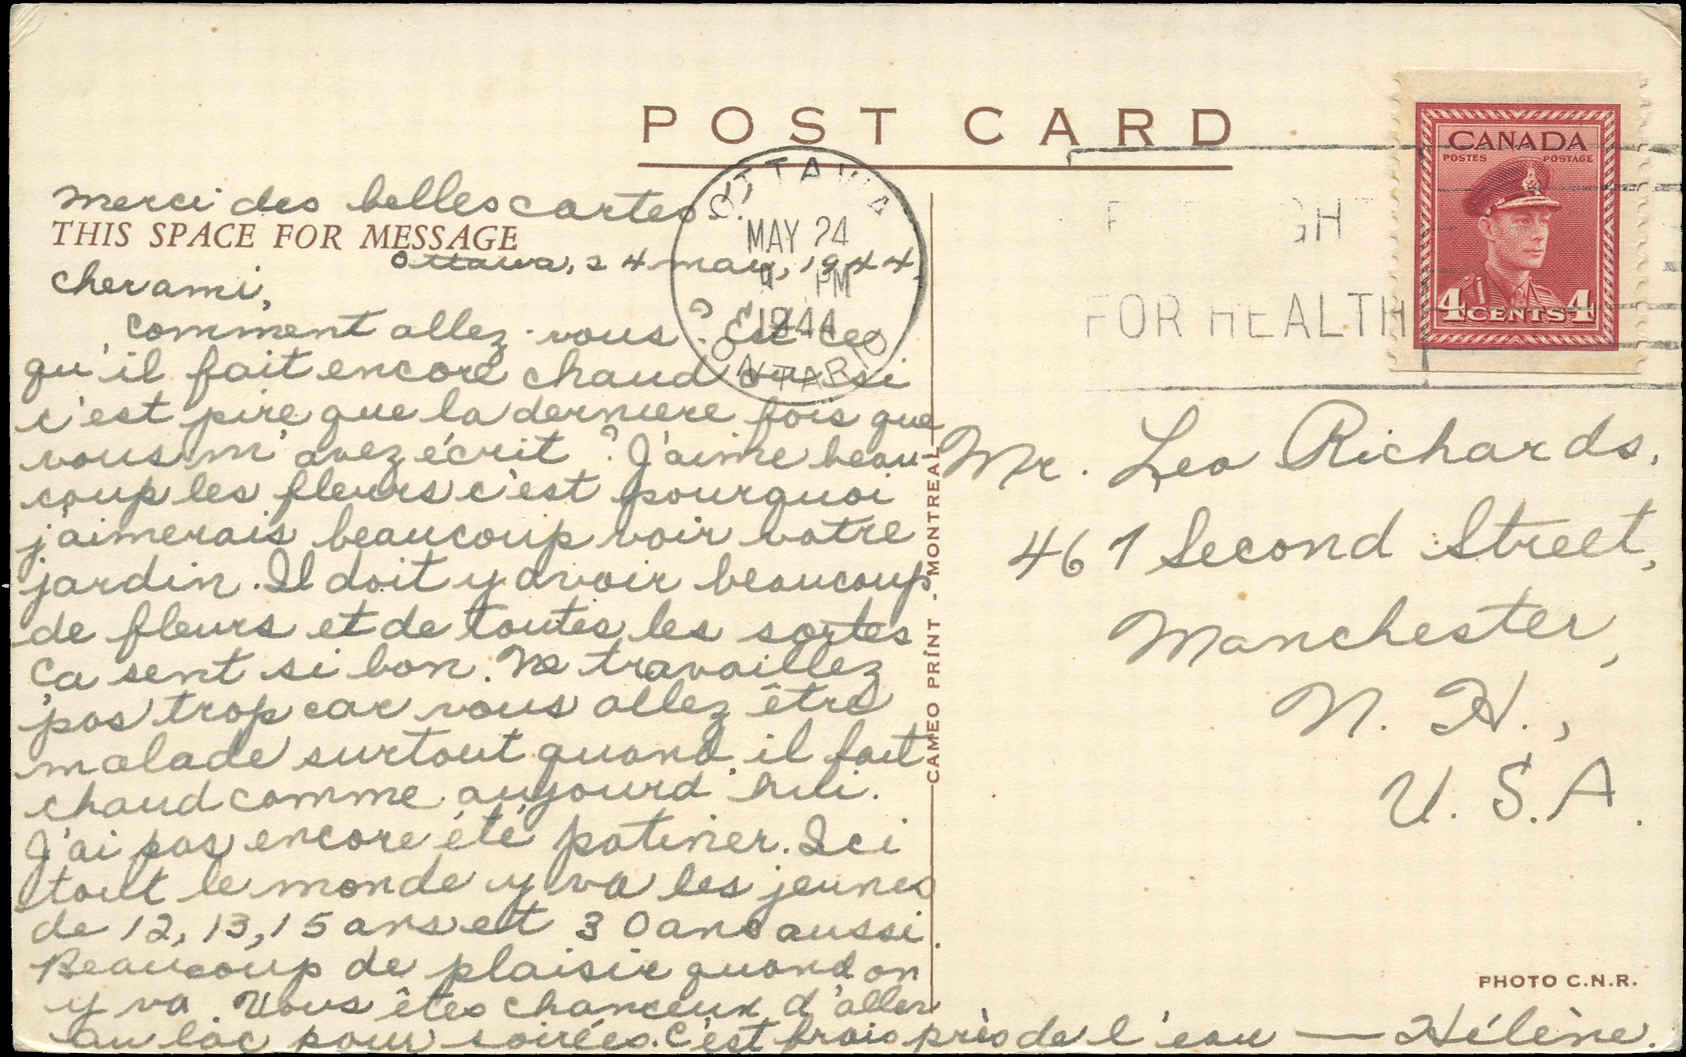 Canada Post Card, May 24, 1944